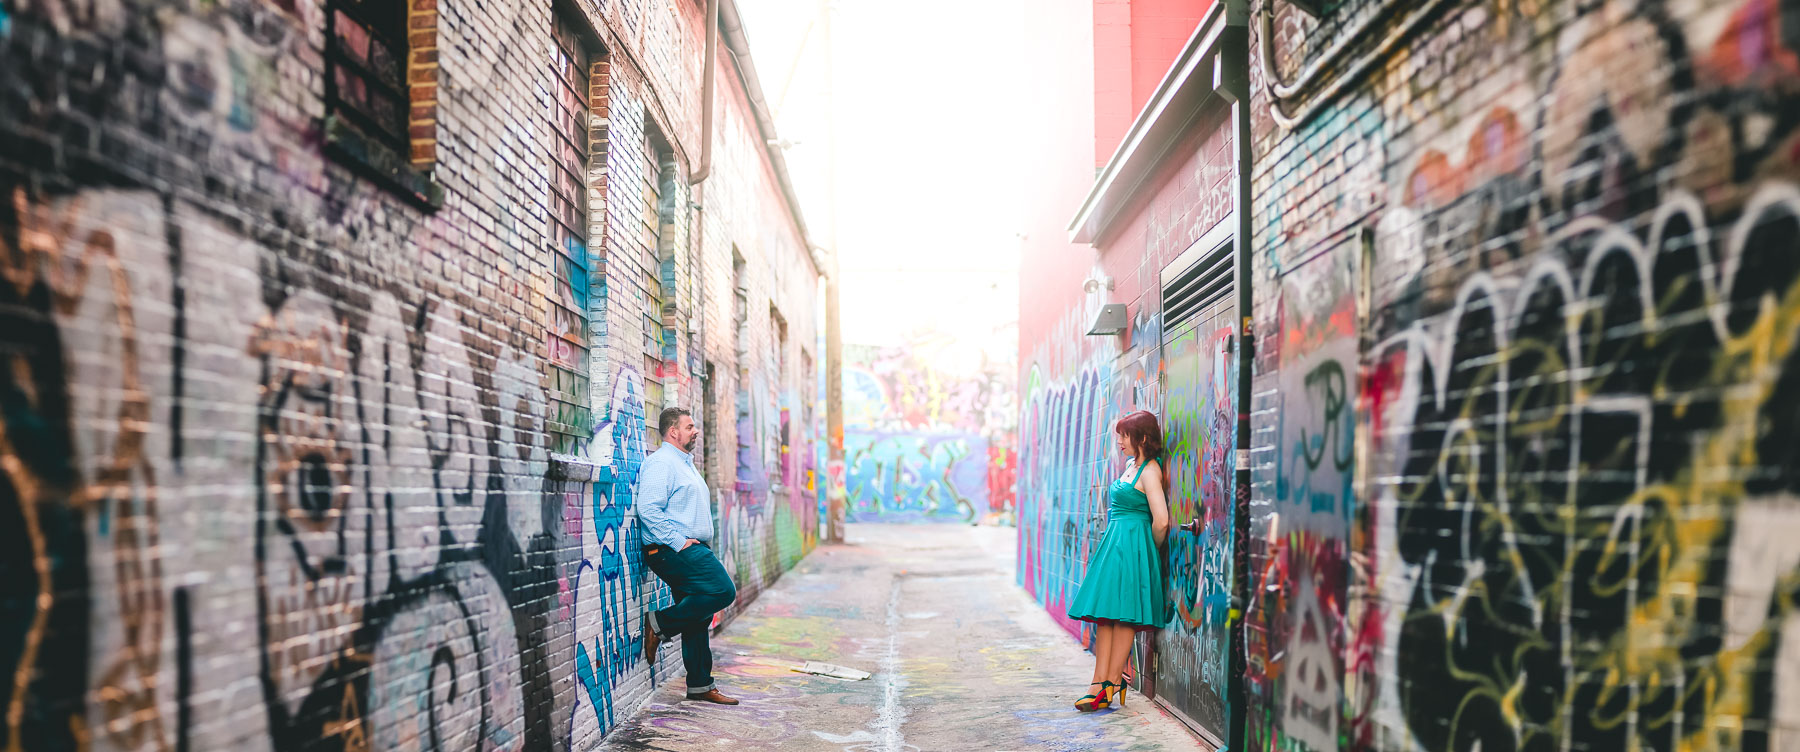 engagement session with murals and graffiti in baltimore 17